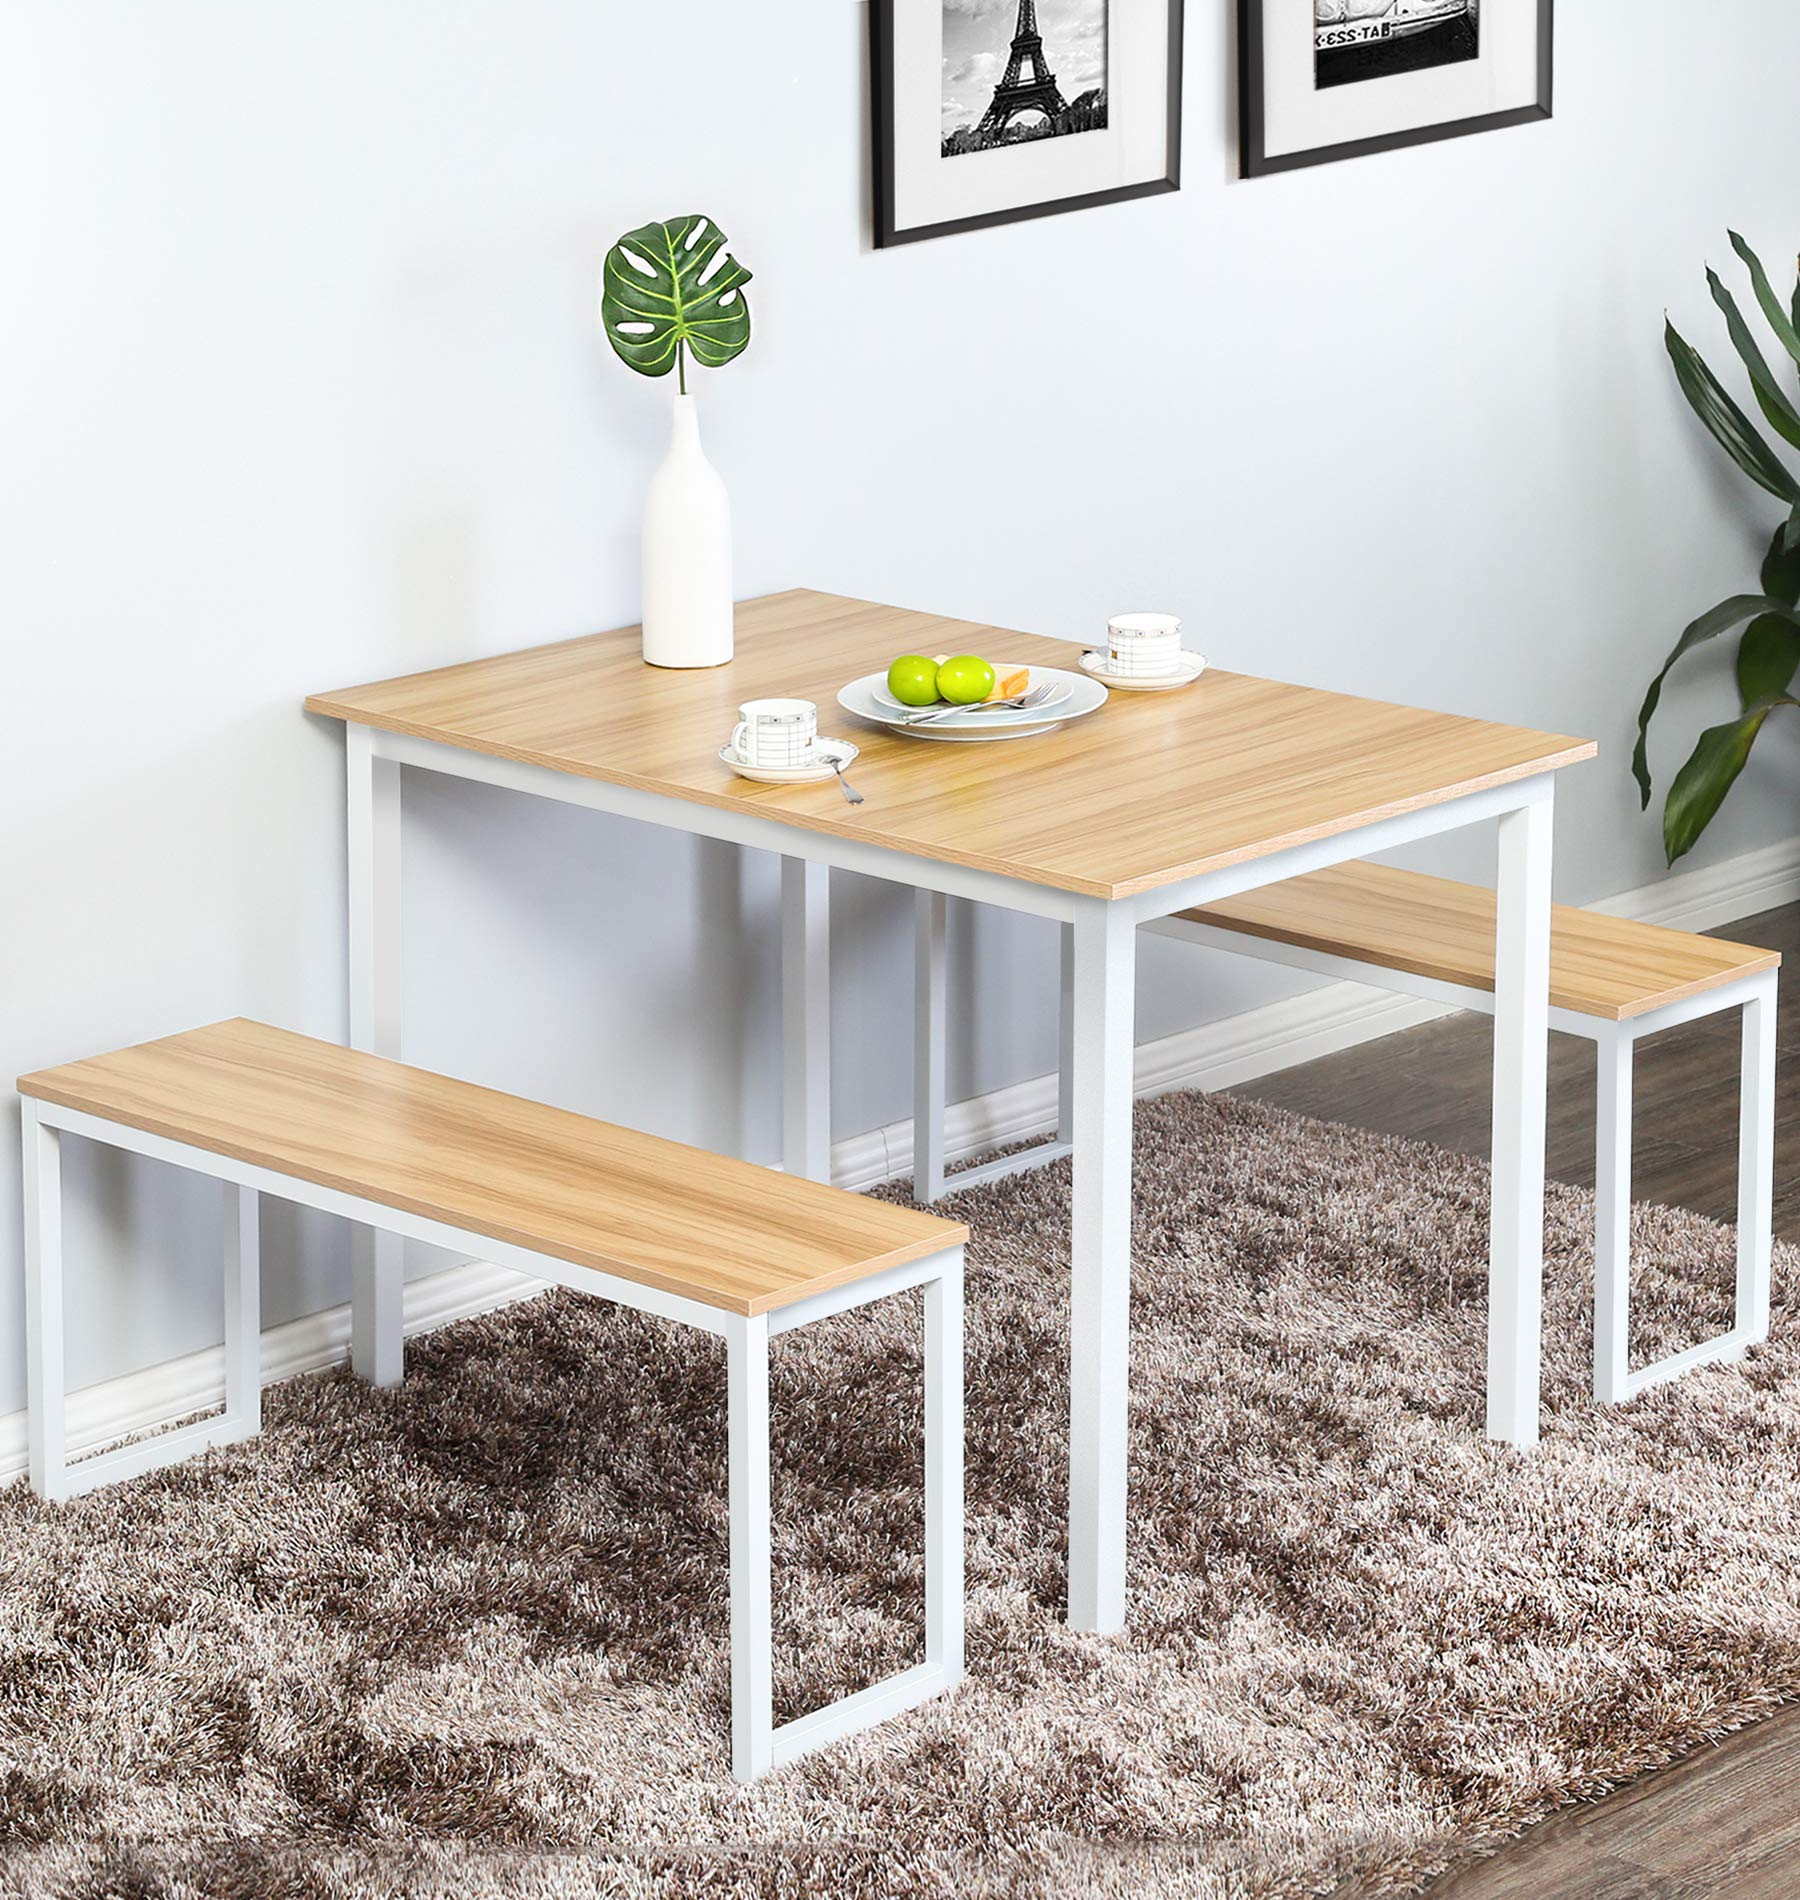 Homury Modern Studio Soho Dining Table with Two Benches 3 Piece Set,White by Homury